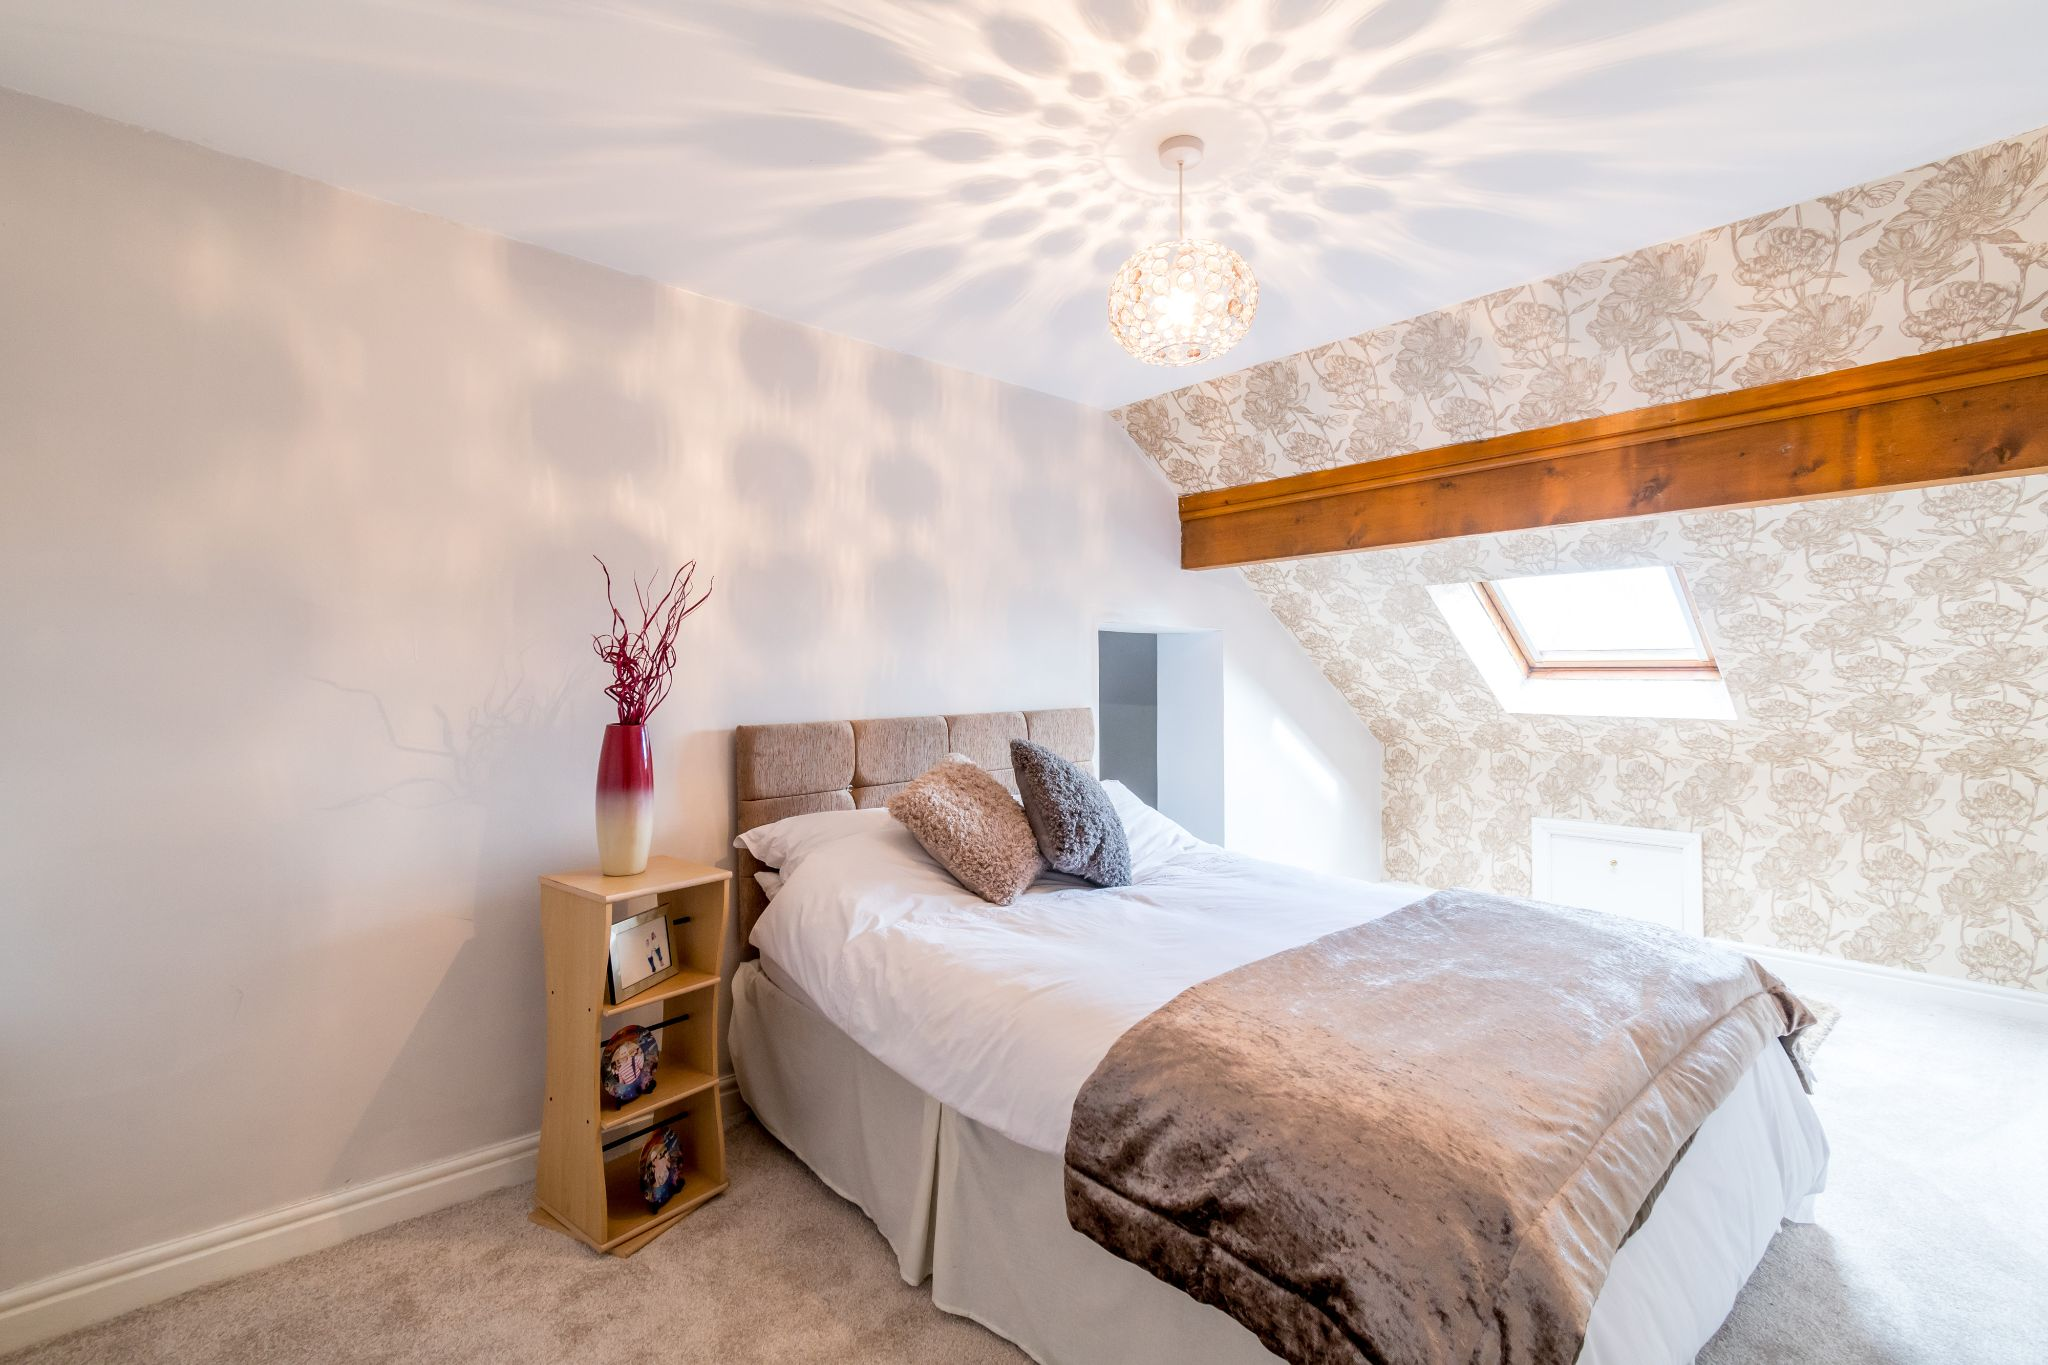 5 bedroom detached house SSTC in Brighouse - Bedroom 2